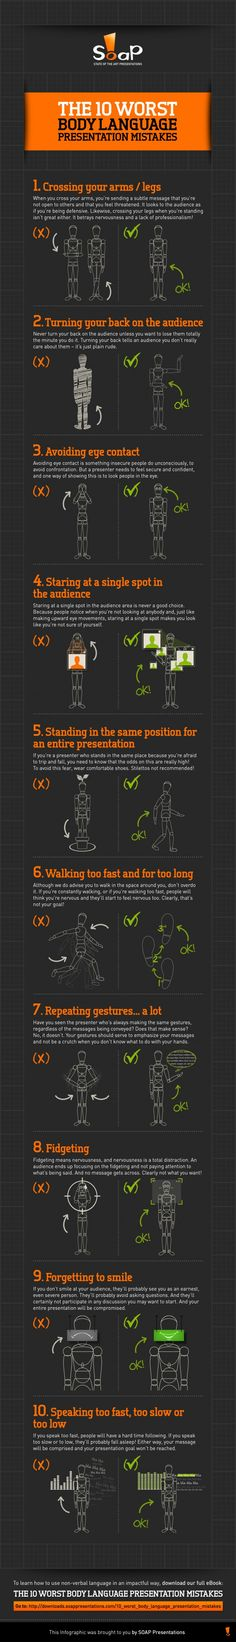 Psychology infographic & Advice Interviews: The 8 Worst Body Language Mistakes — INFOGRAPHIC Image Description Interviews: The 8 Worst Body Language Coaching, Self Development, Personal Development, Leadership, Presentation Skills, Public Speaking, Communication Skills, Body Language, Things To Know